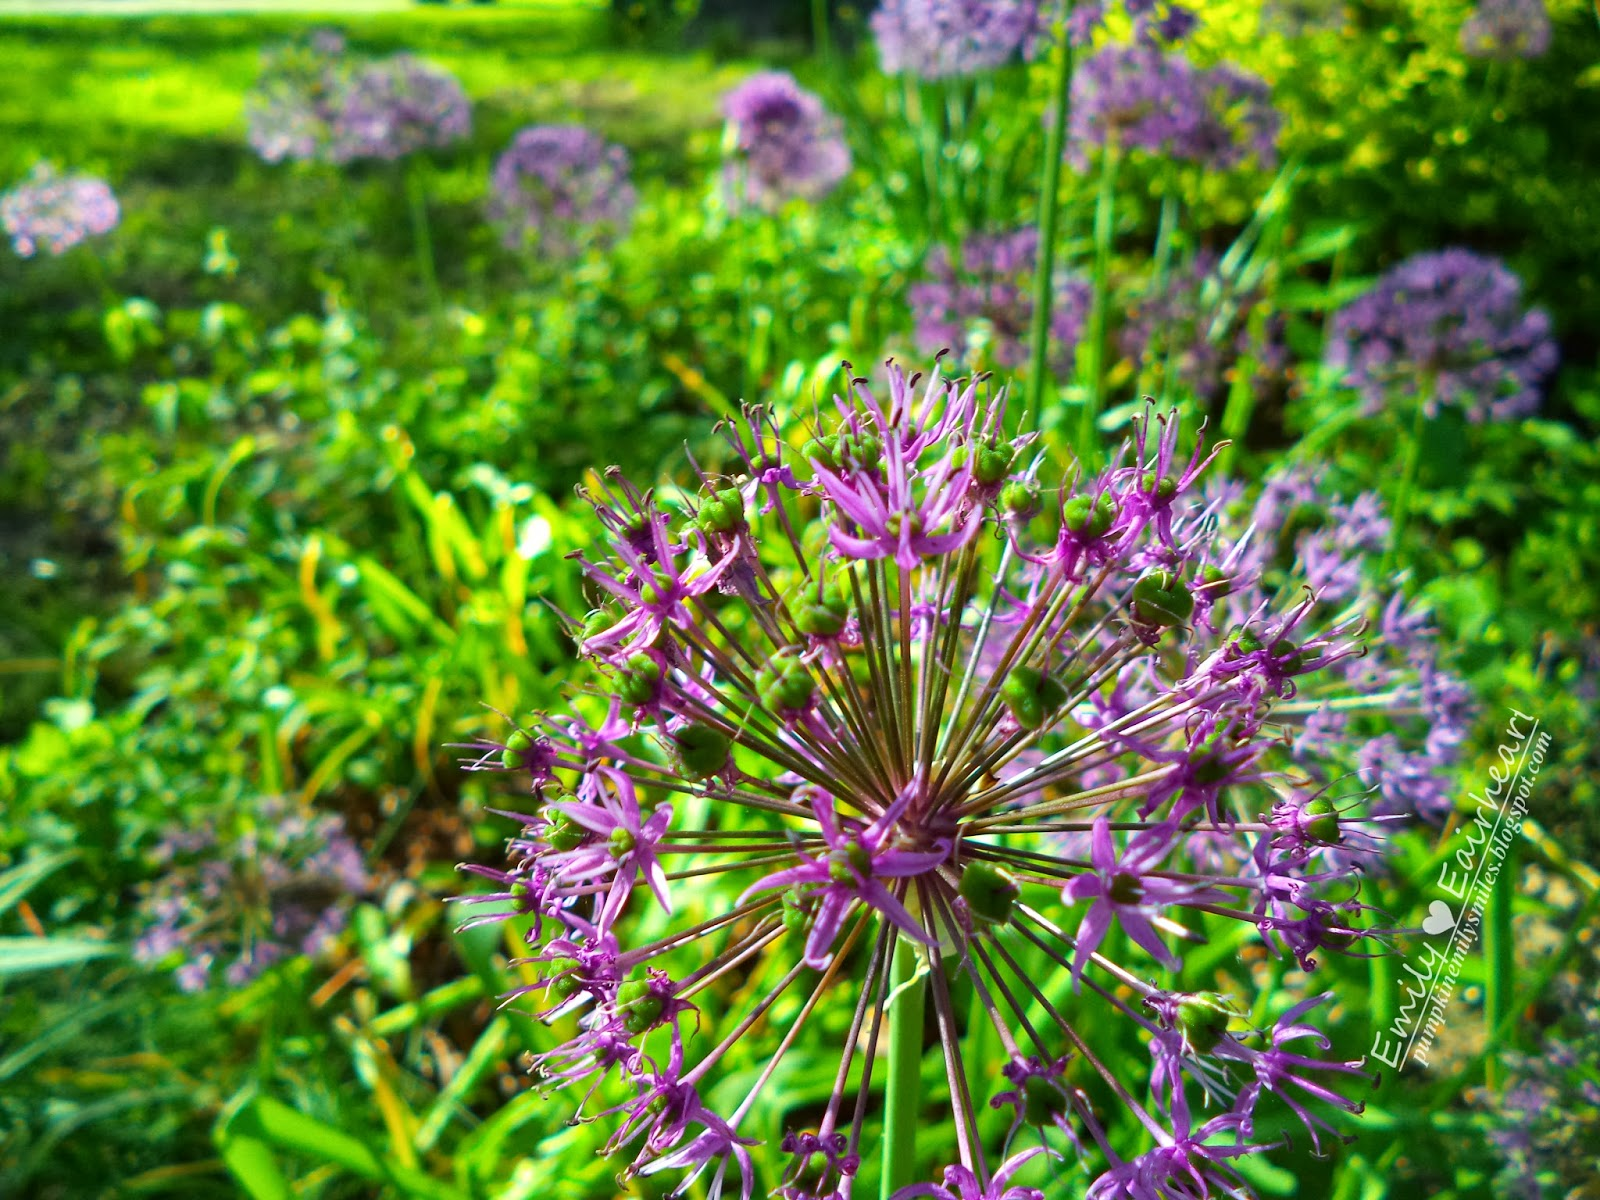 One close up of a Allium flower and many blurred behind.